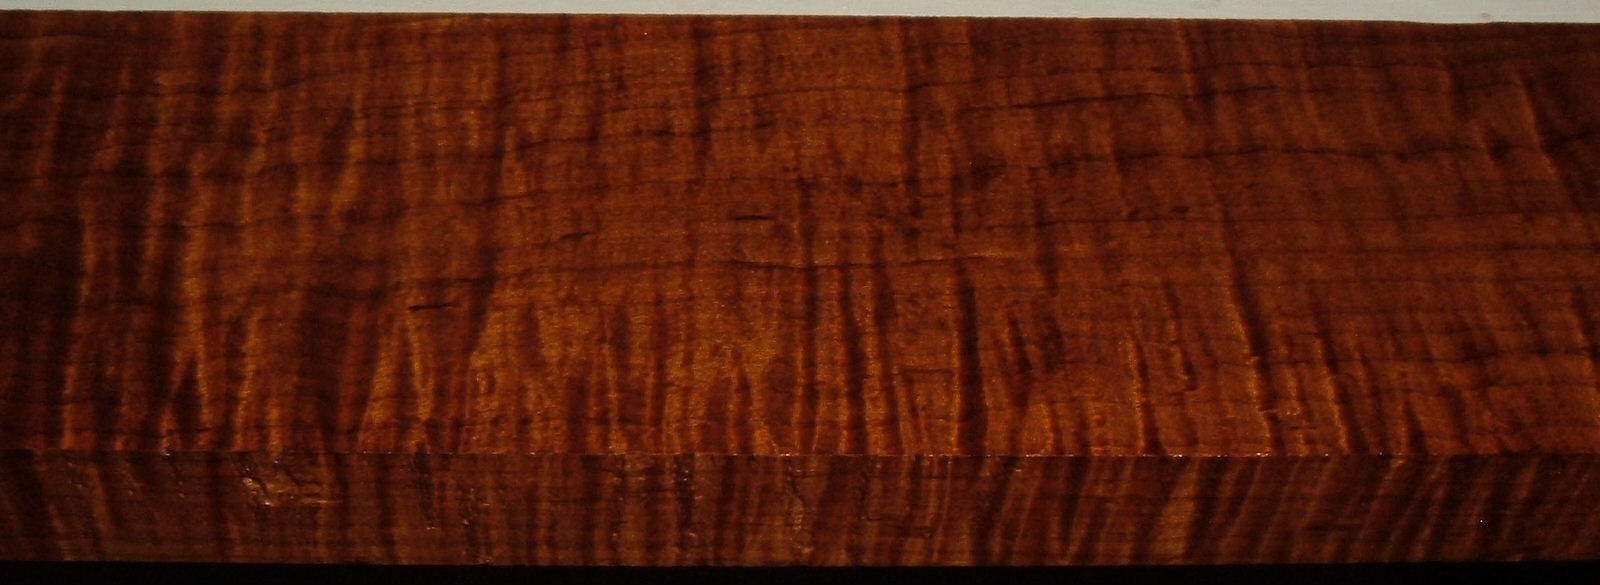 RM2004-105, 1-1/4x4x38, Roasted Torrefied Curly, Tiger Maple